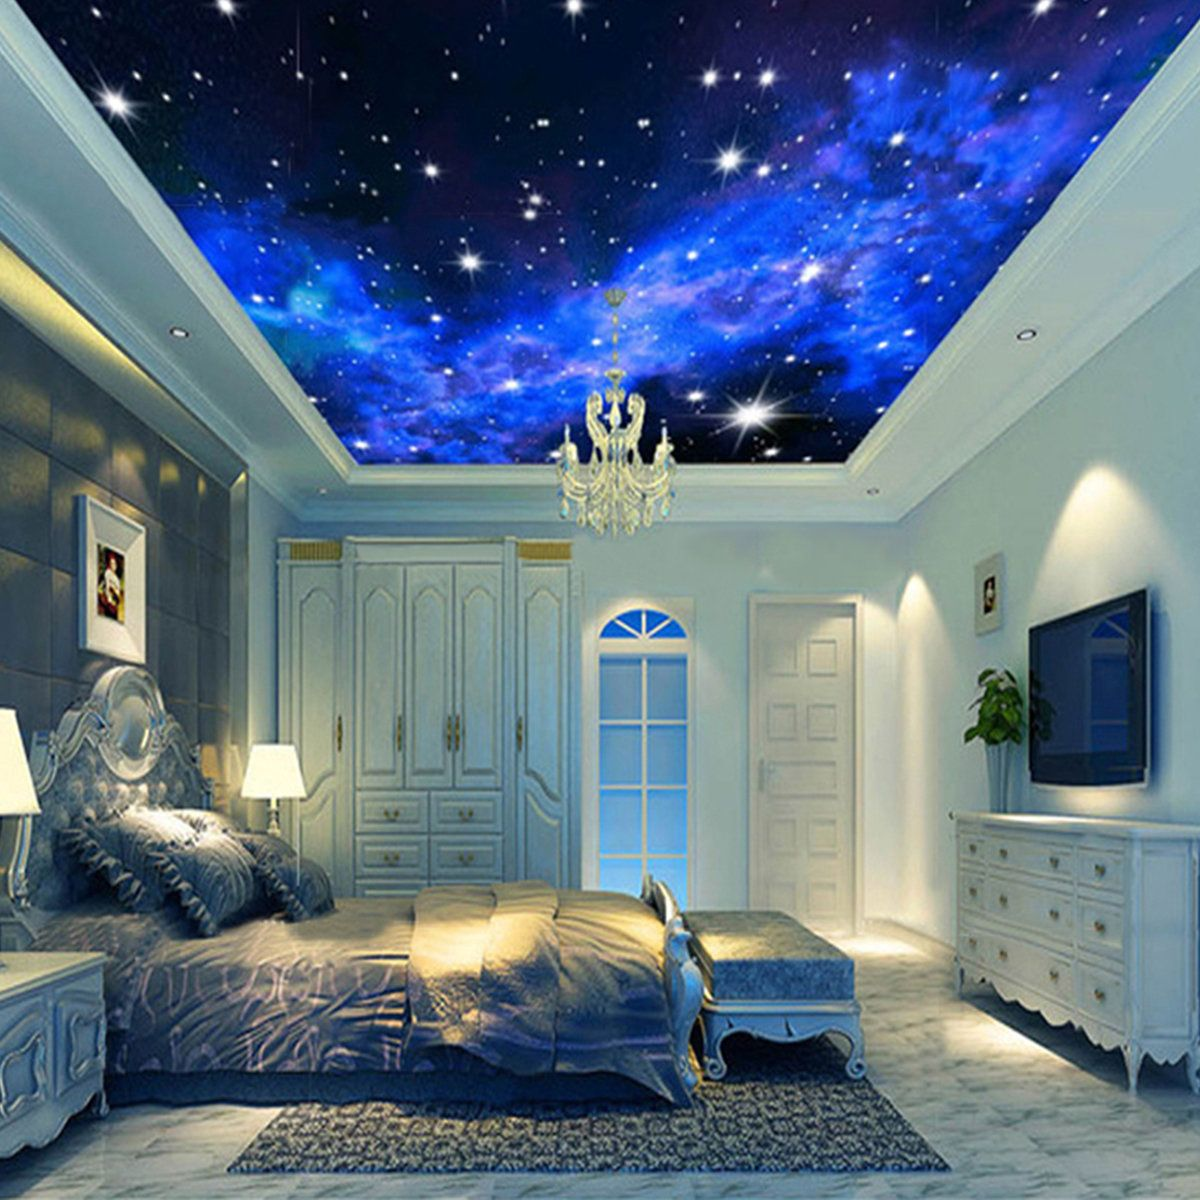 3d Home Decor 3d Wallpaper Mural Night Clouds Star Sky Wall Paper